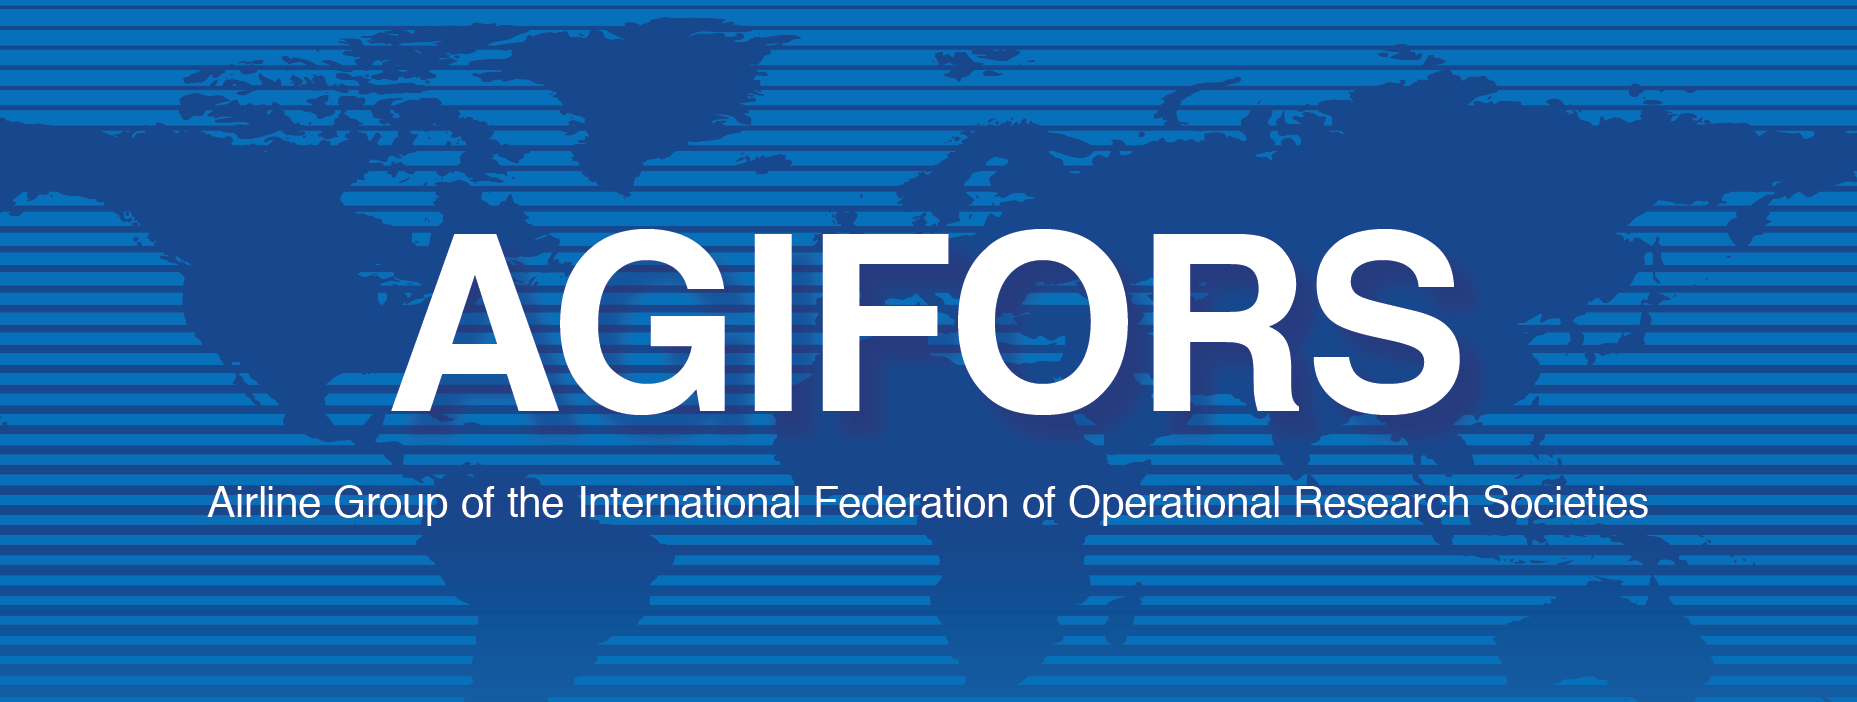 logo for Airline Group of IFORS